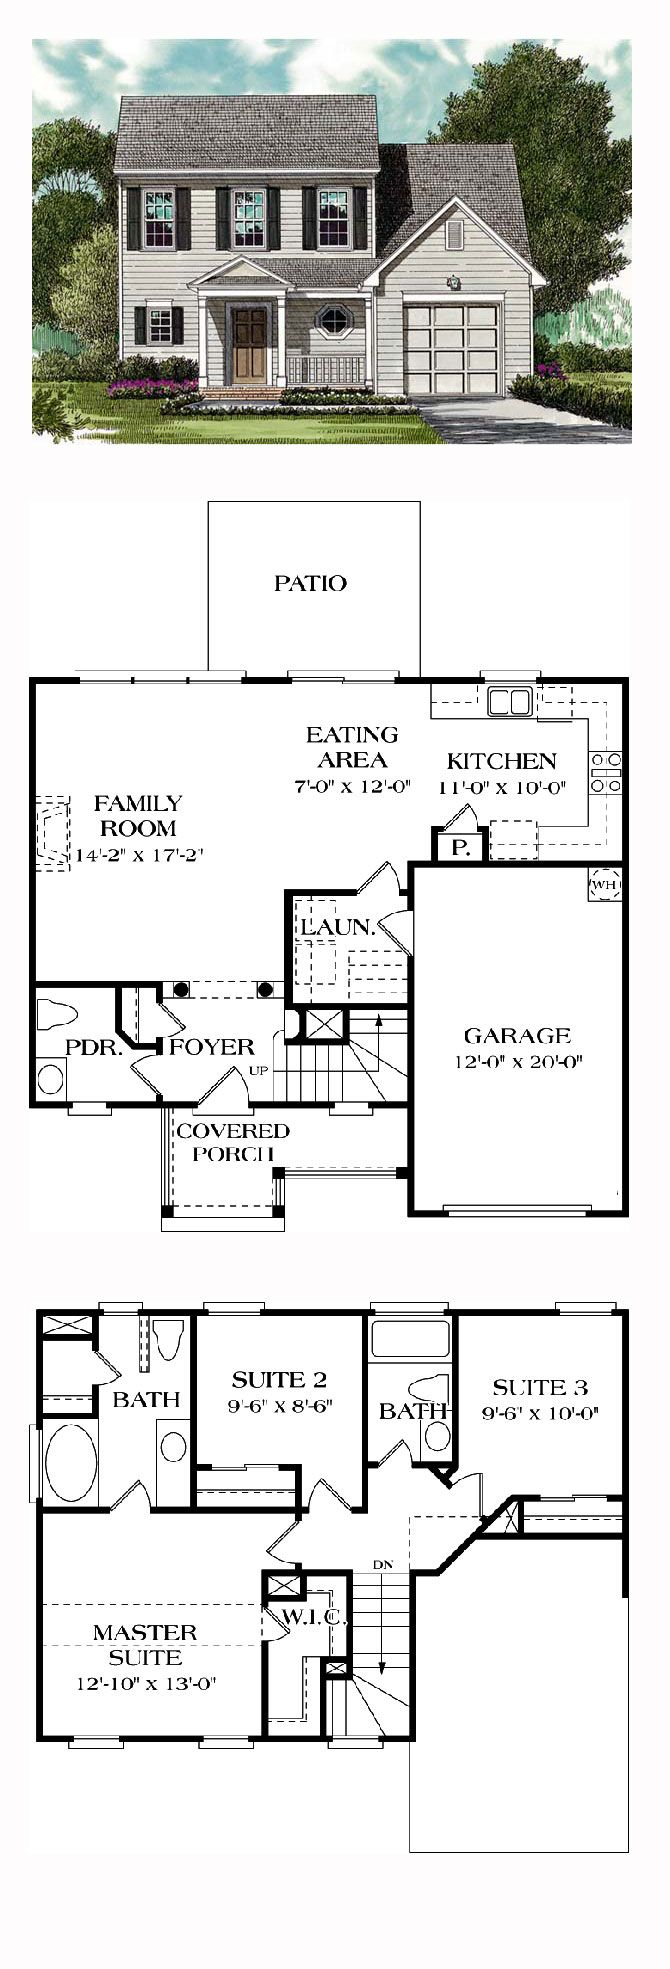 Colonial Style House Plan 96921 With 3 Bed 3 Bath 1 Car Garage Colonial House Plans House Plans Farmhouse Sims House Design